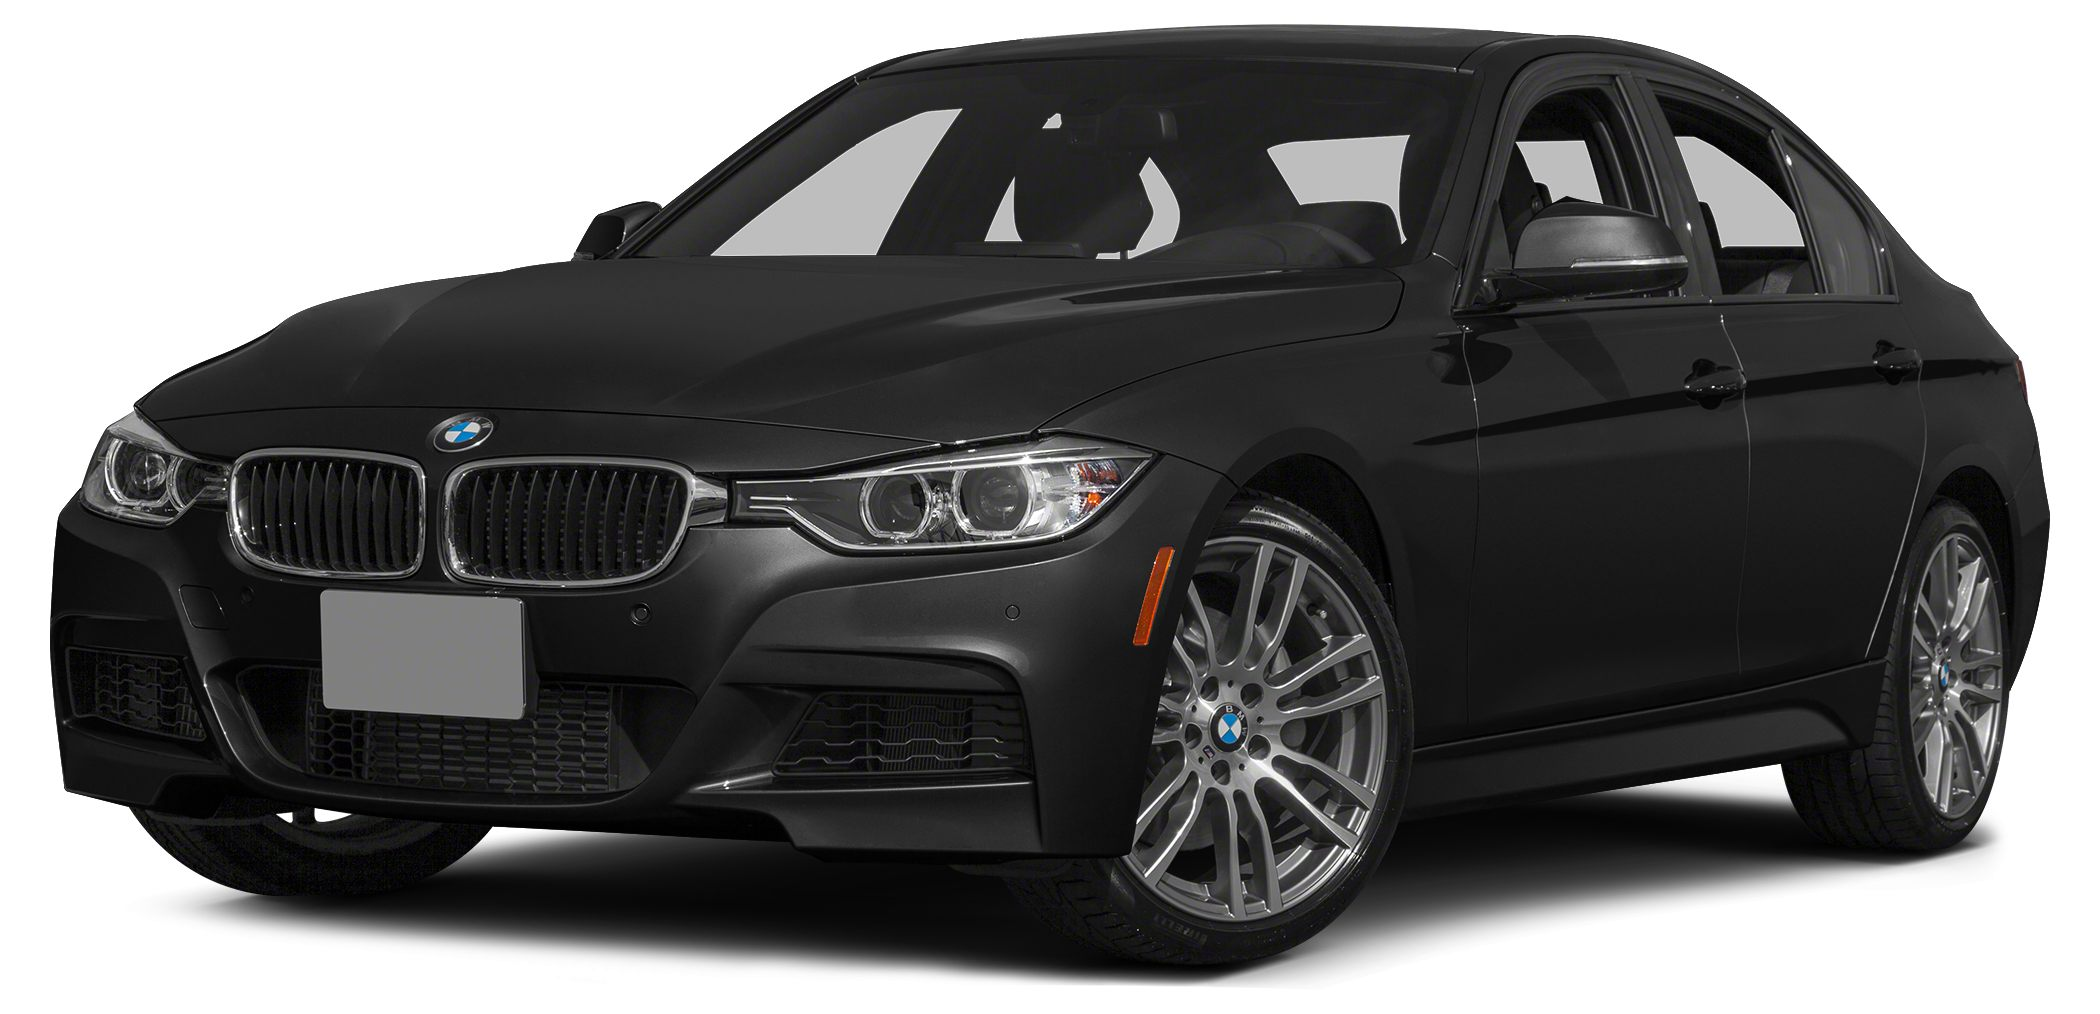 2013 BMW 3 Series 335i 2013 BMW 335i Sport package sedan traded in on a new Mercedes-Benz Complet